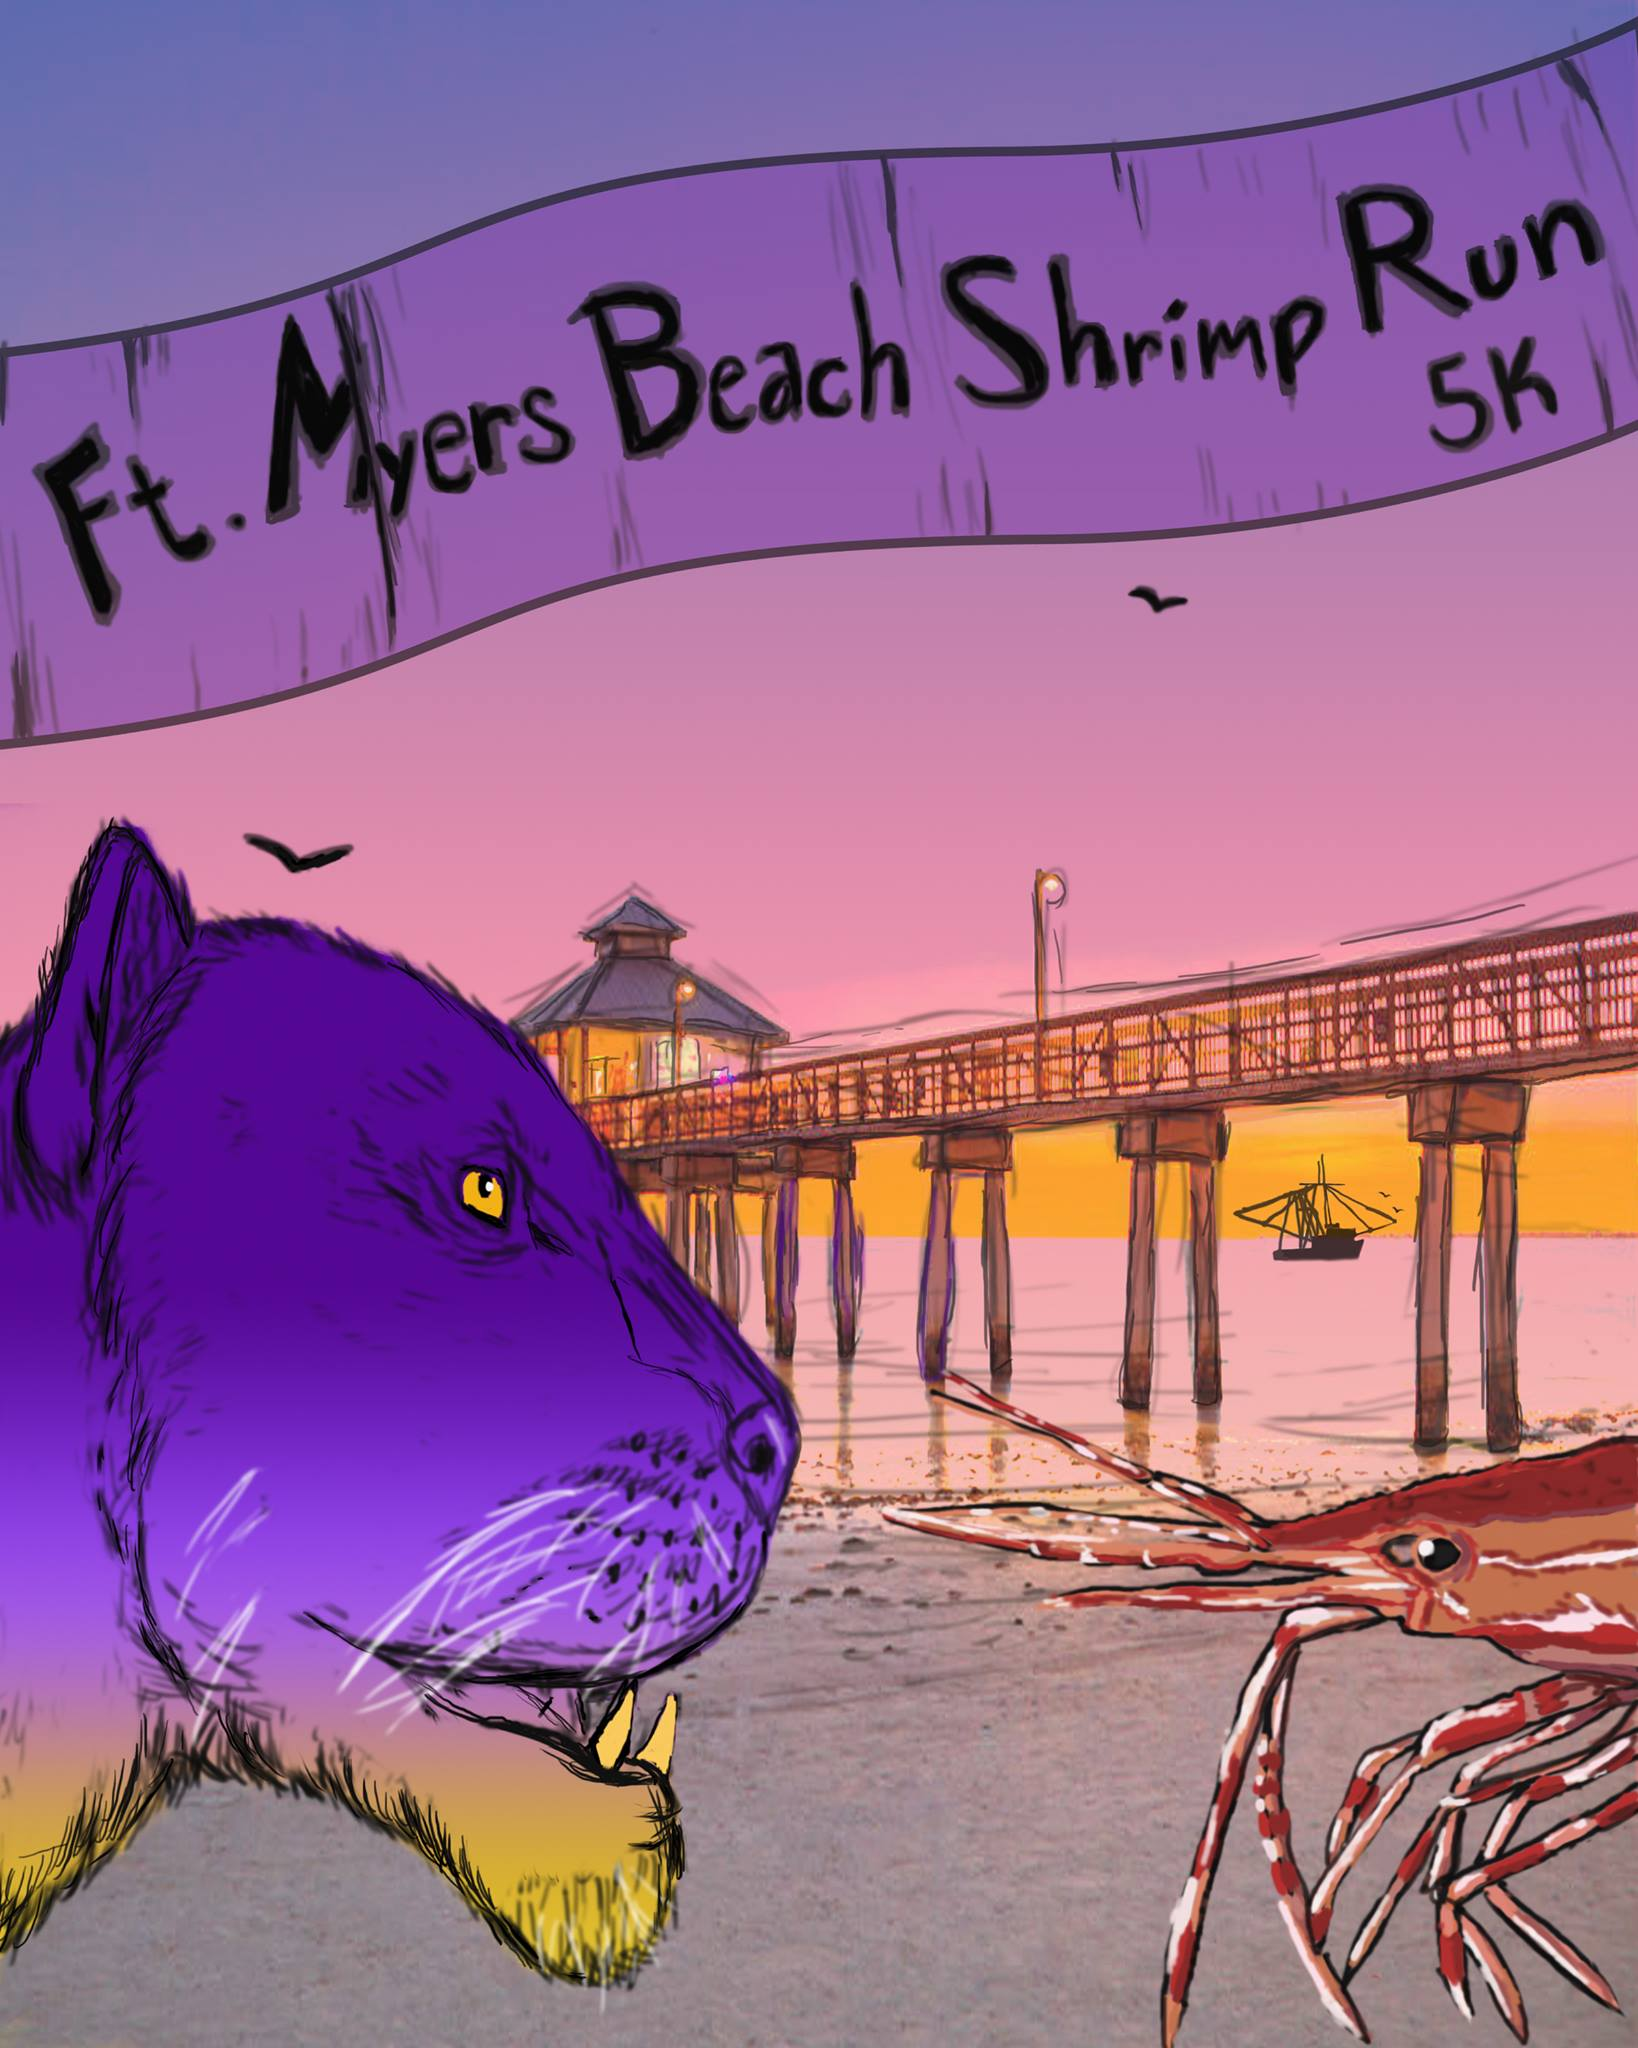 5k shrimp run